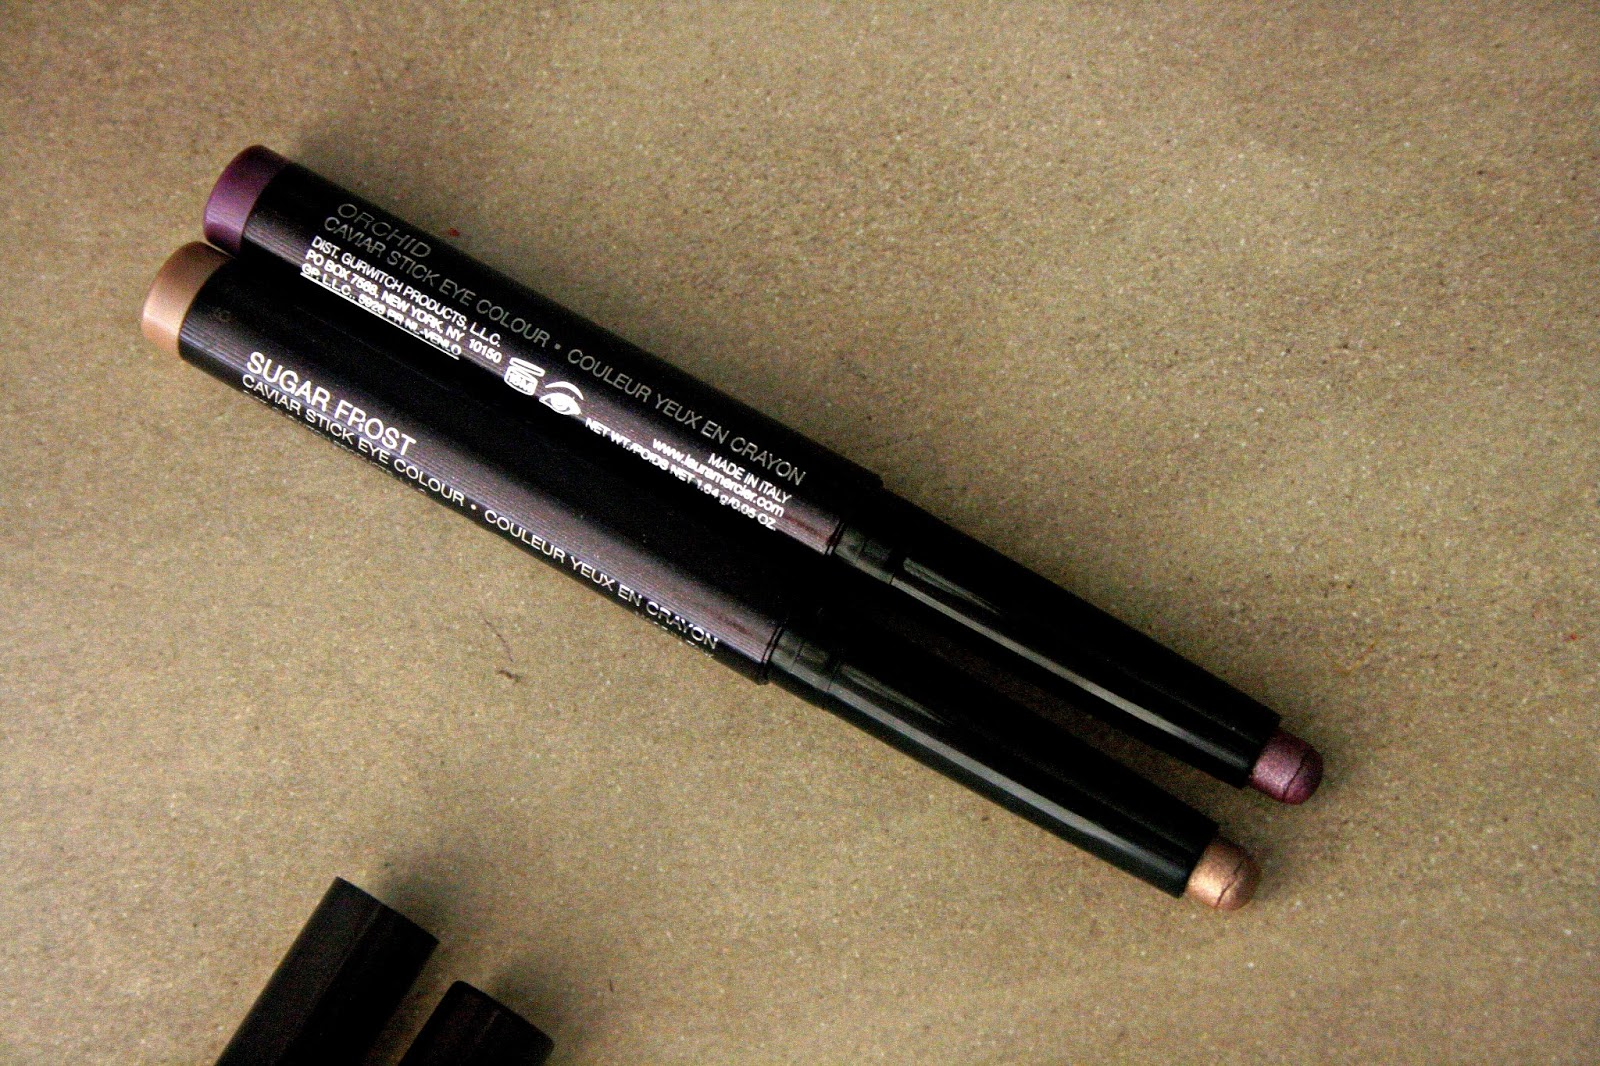 Laura Mercier Caviar Stick Eye Colors in Orchid & Sugar Frost Spring 2013